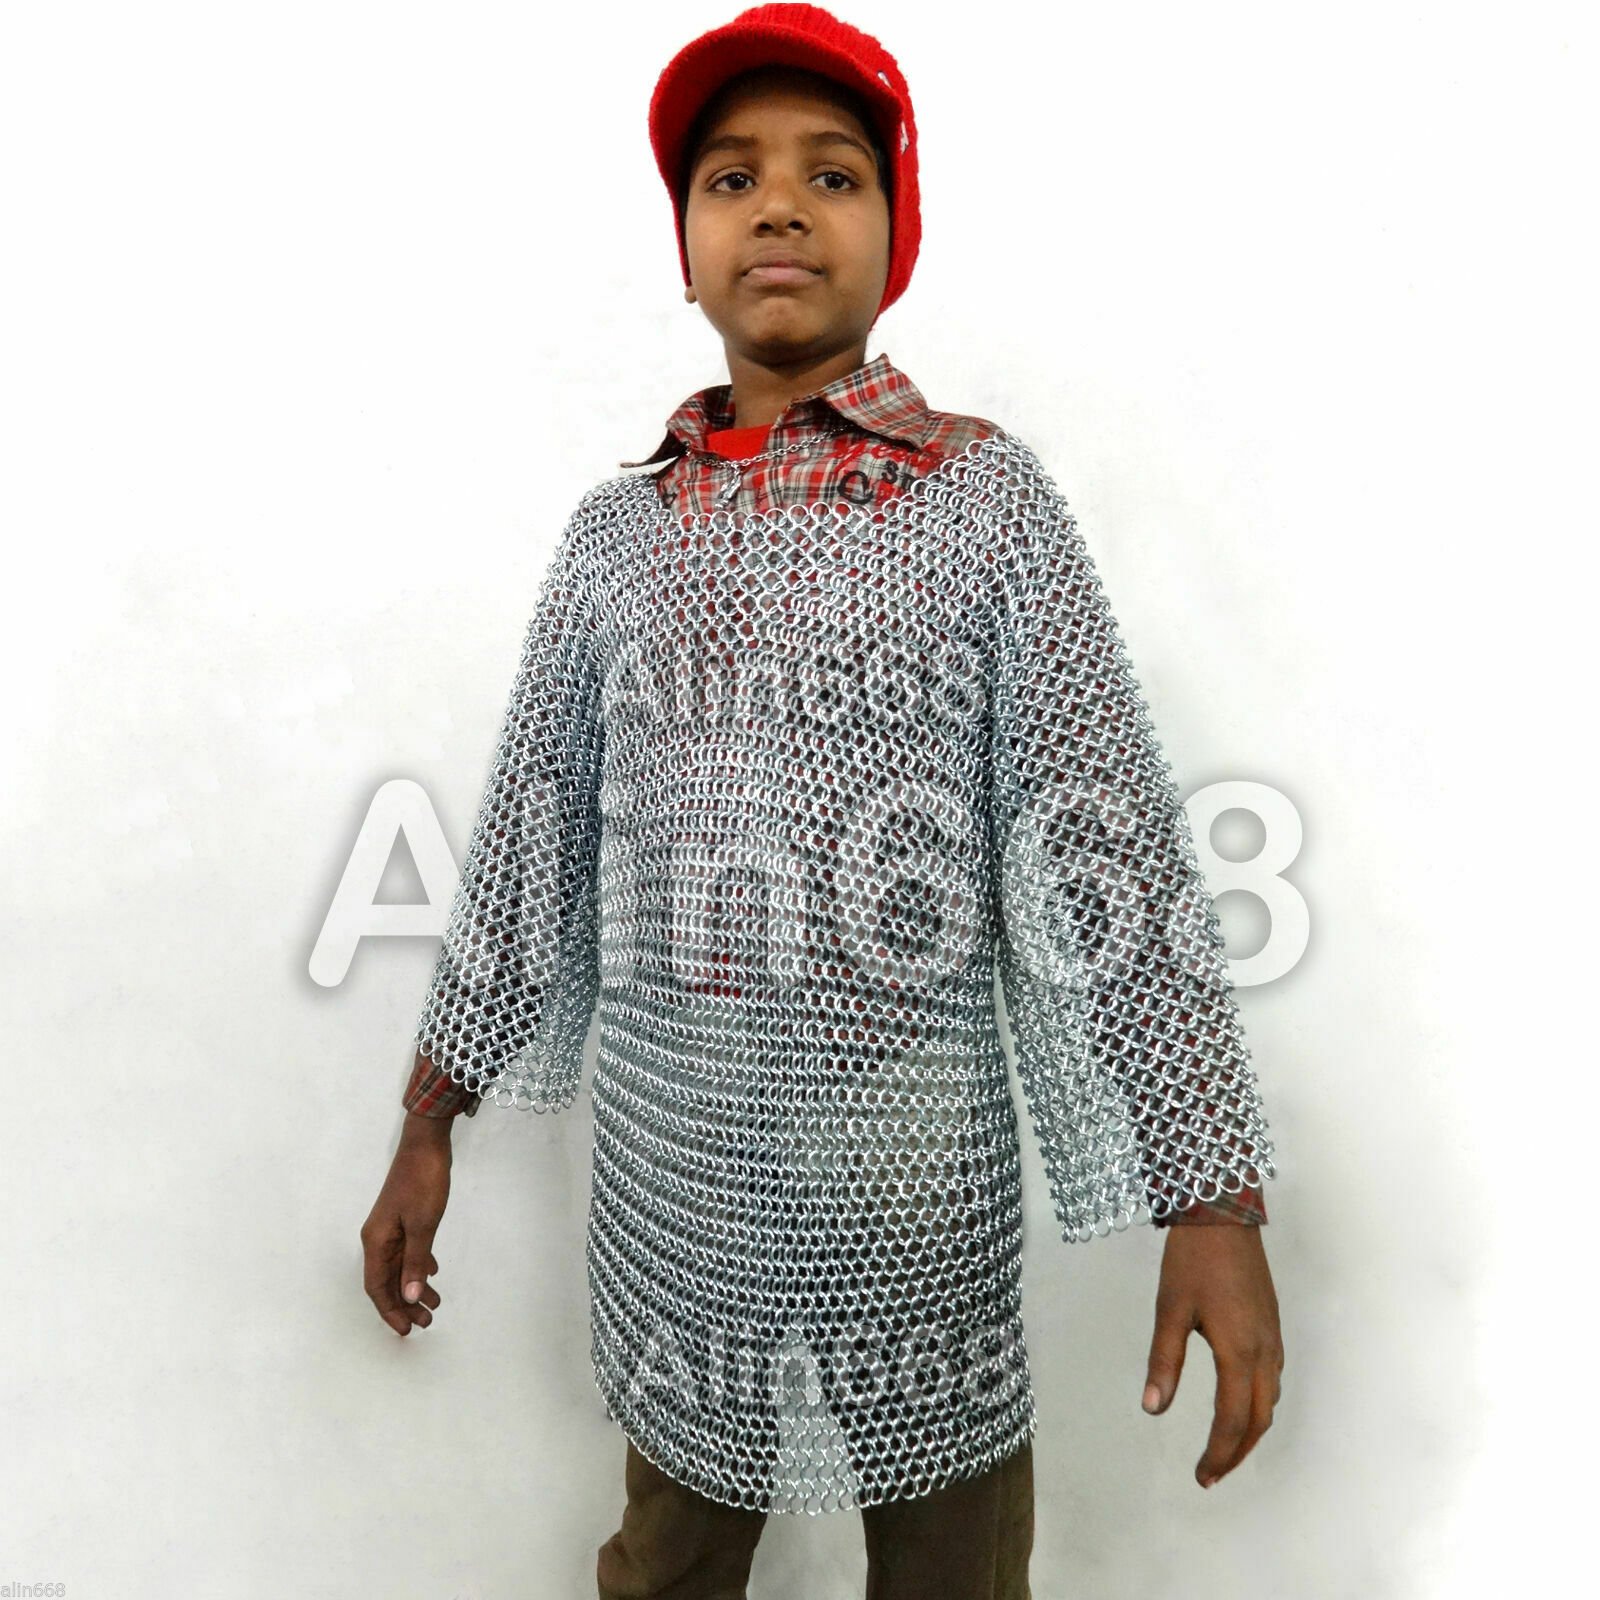 Lightweight Aluminum Chainmail Shirt 10-15 yrs child Medieval Chain Mail Costume